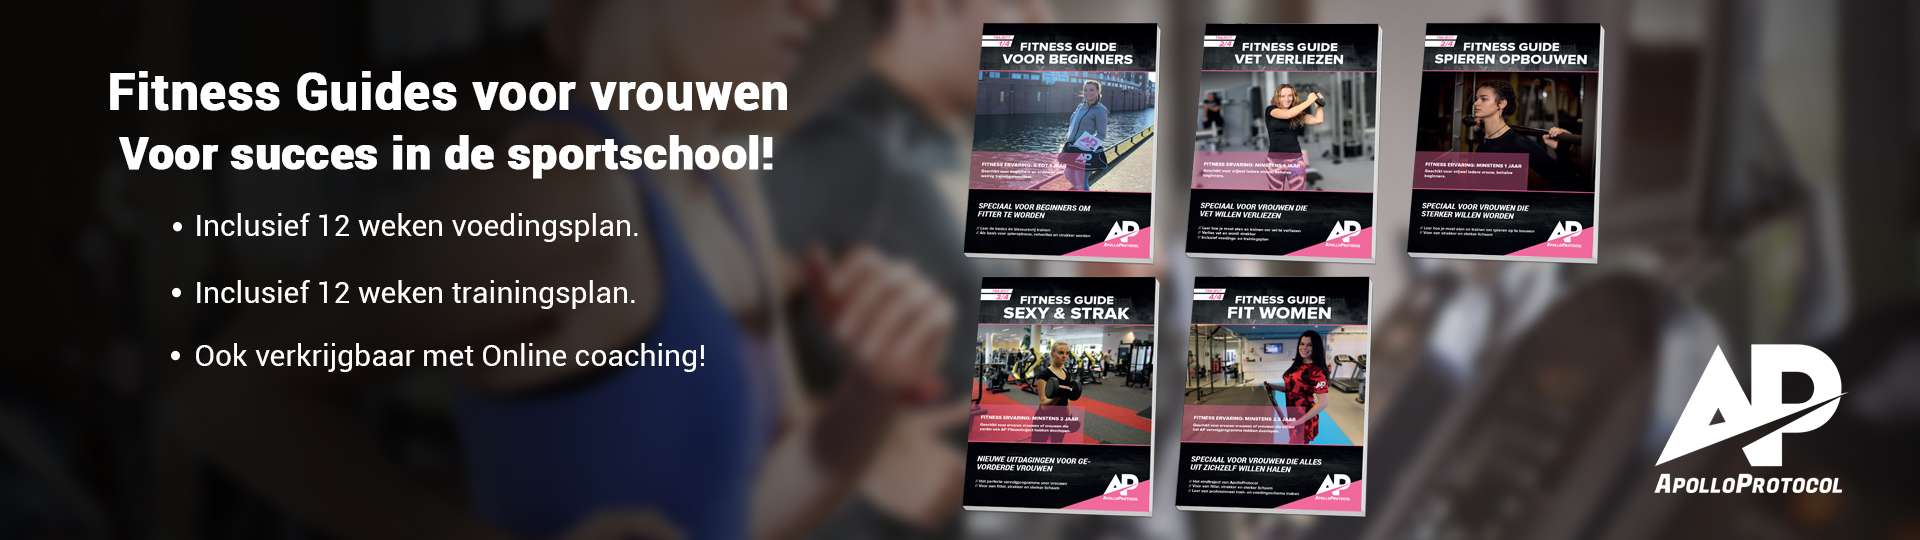 header fitness guides vrouwen